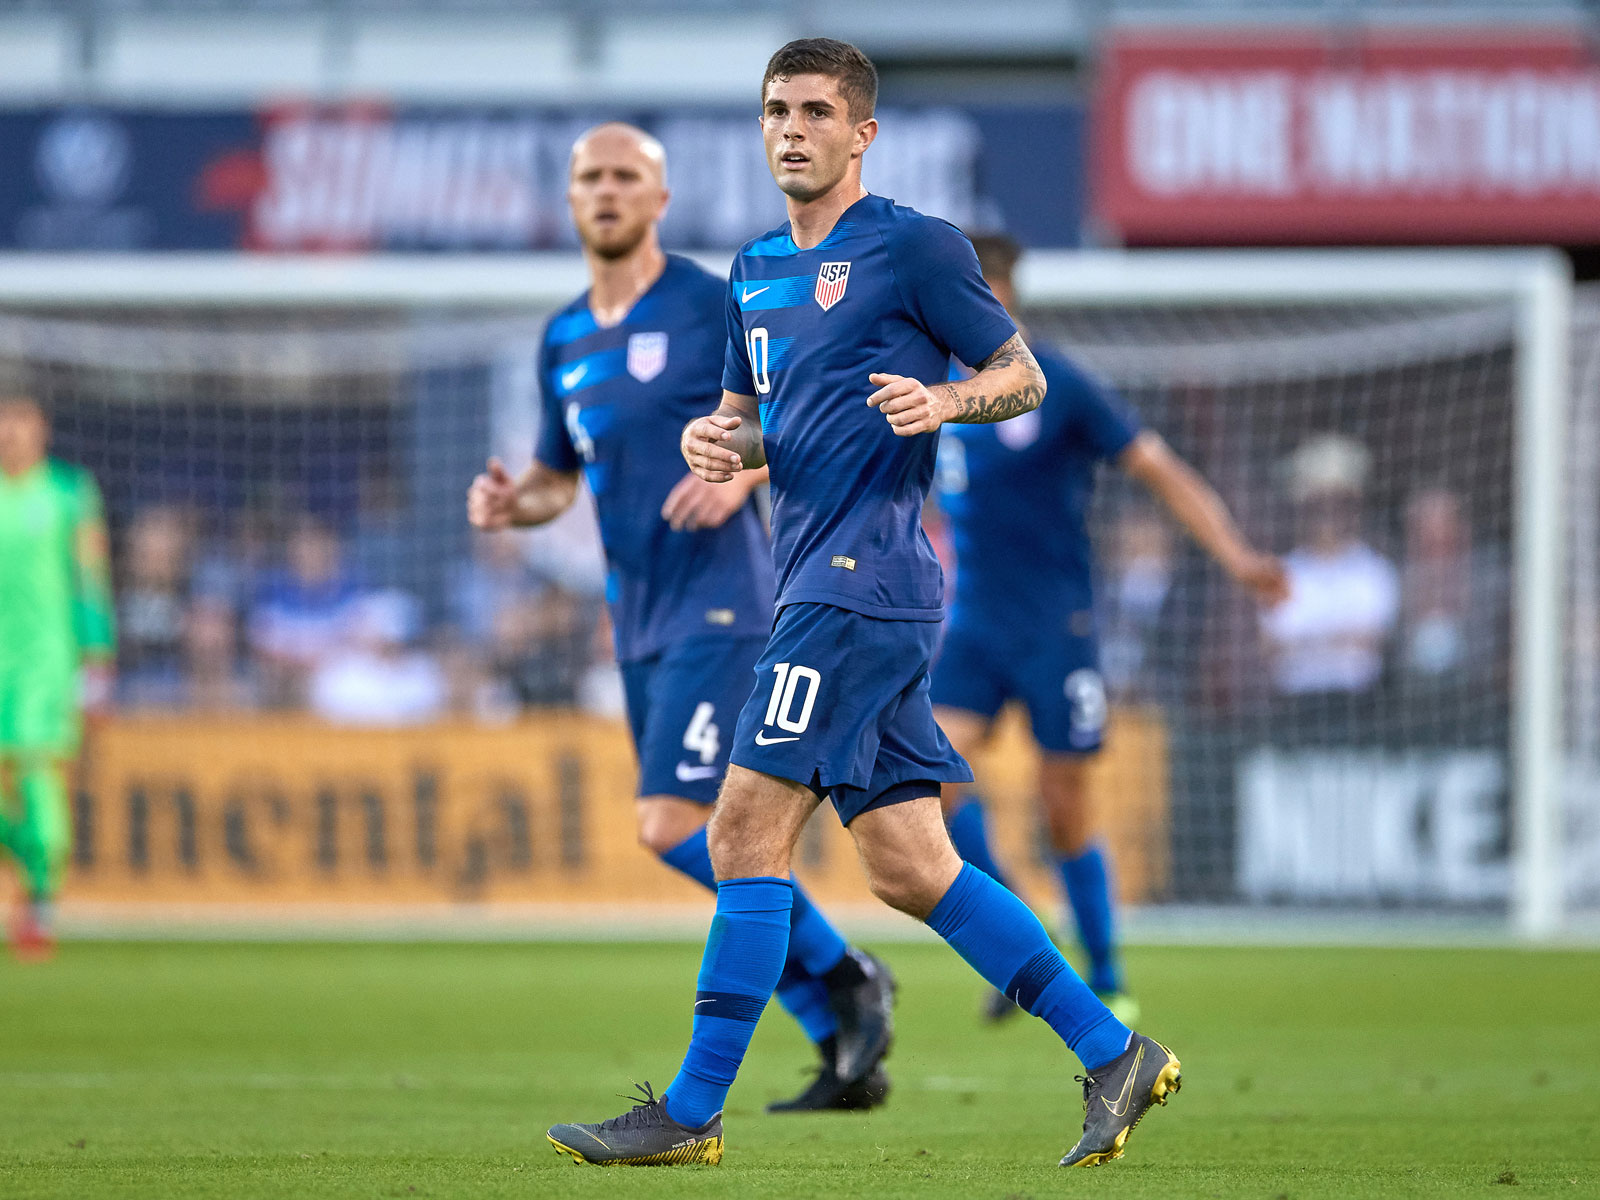 Christian Pulisic and Michael Bradley in the USMNT midfield